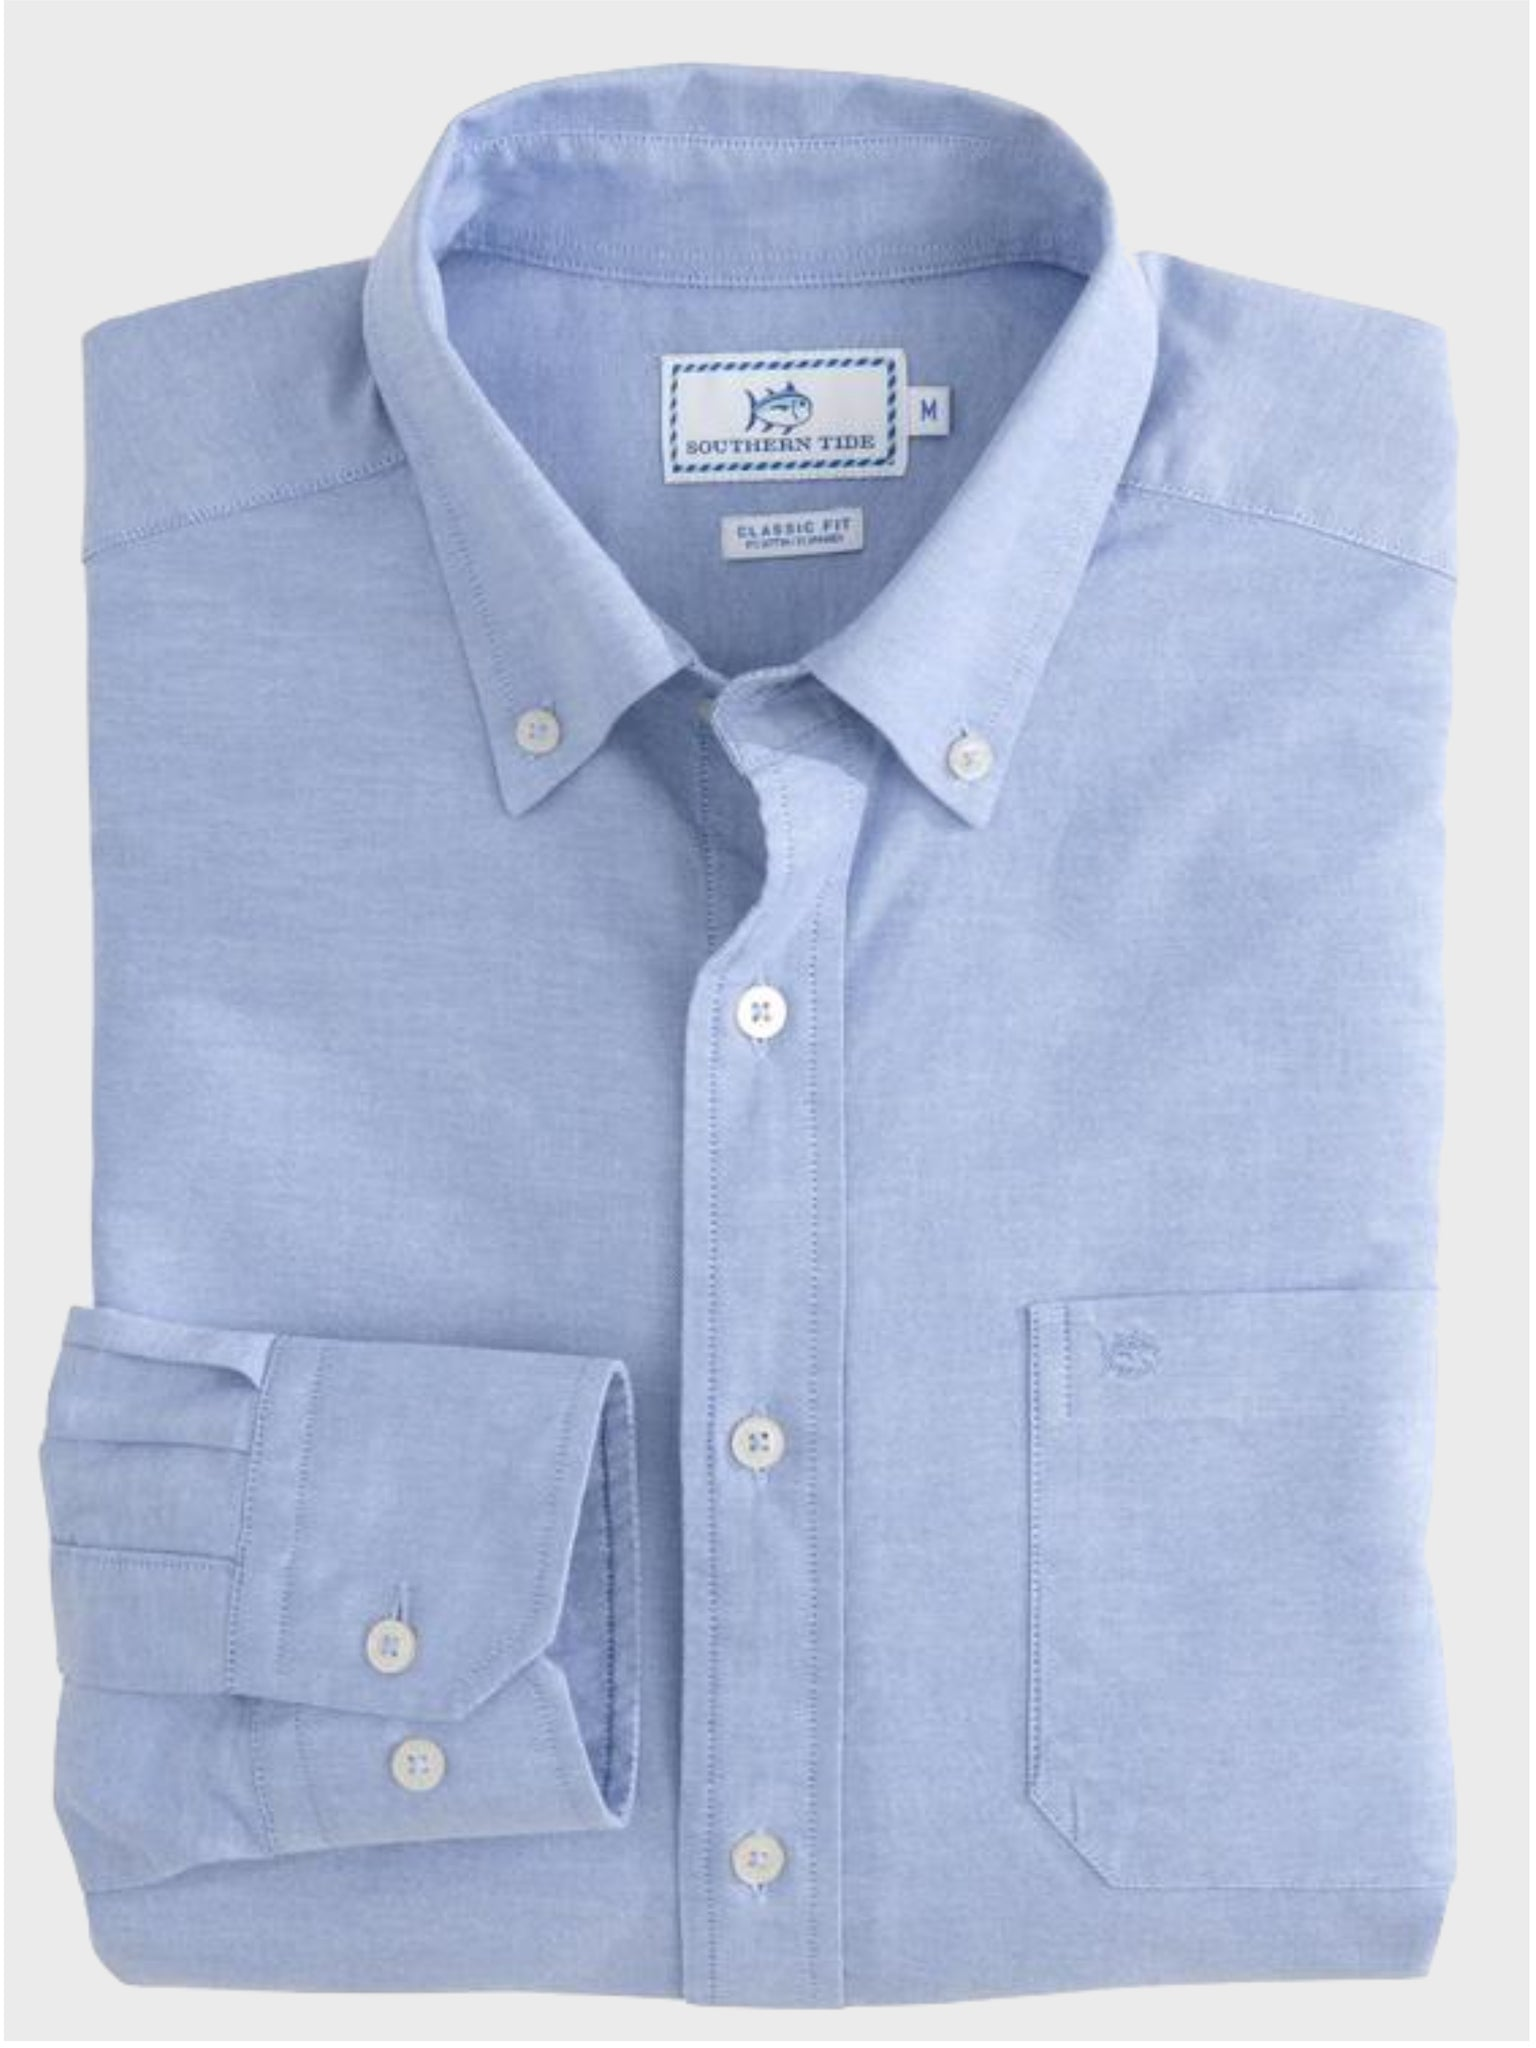 Channel Marker Oxford Button Down - Island Outfitters